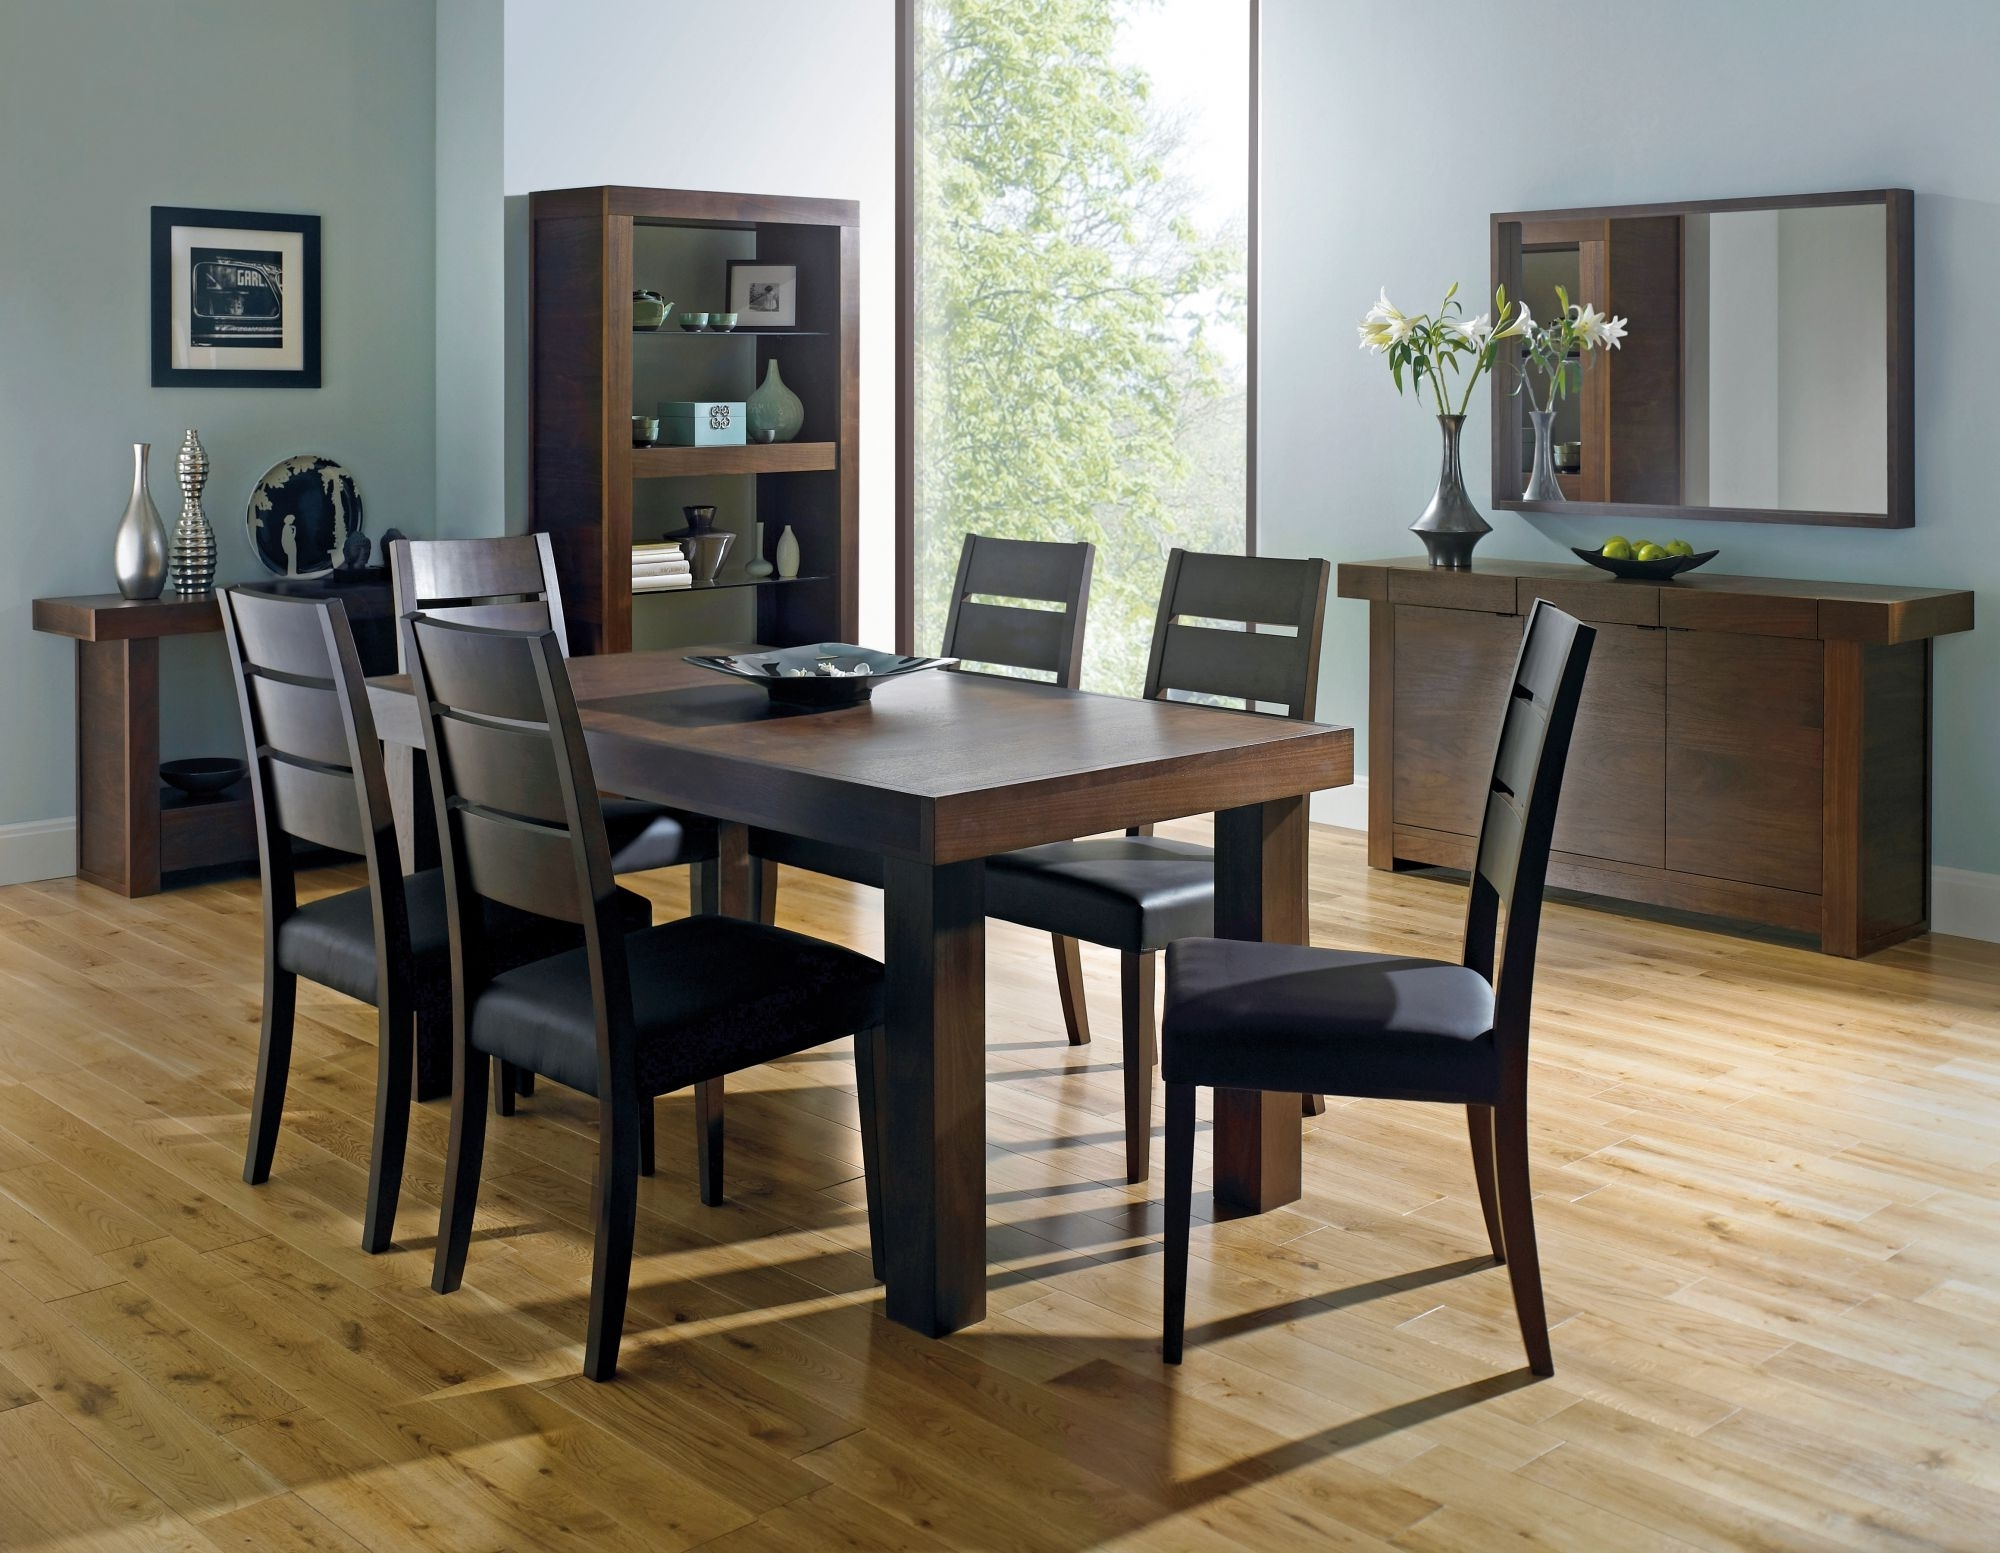 6 Seat Dining Tables within Trendy Bentley Designs Akita Walnut 4-6 End Extending Dining Table + 4